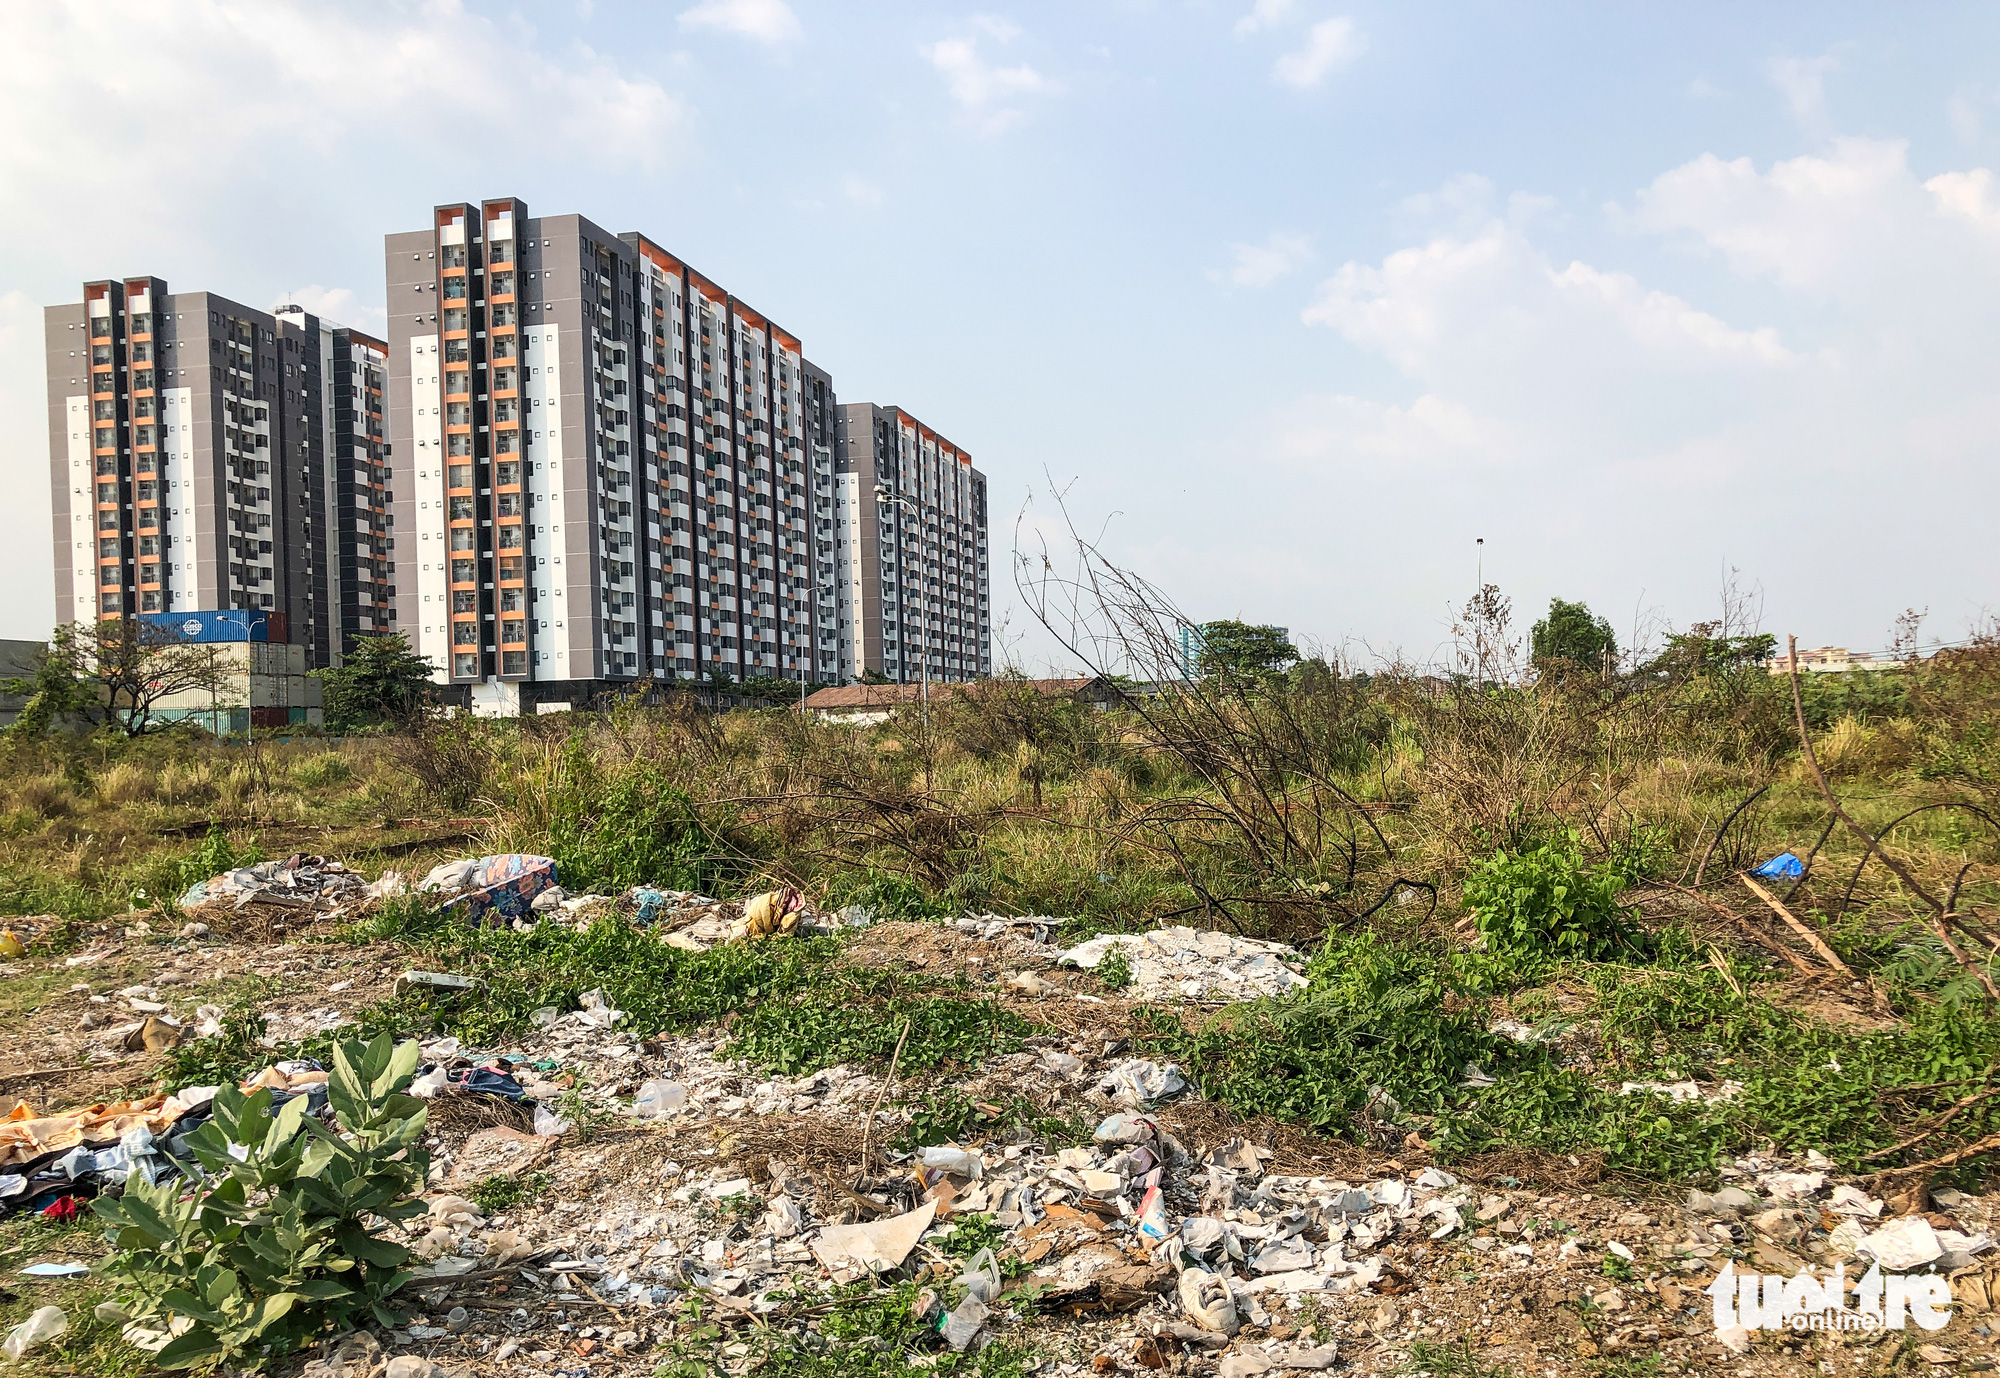 Construction waste is dumped on vacant land plots in Thu Duc City. Photo: Chau Tuan / Tuoi Tre